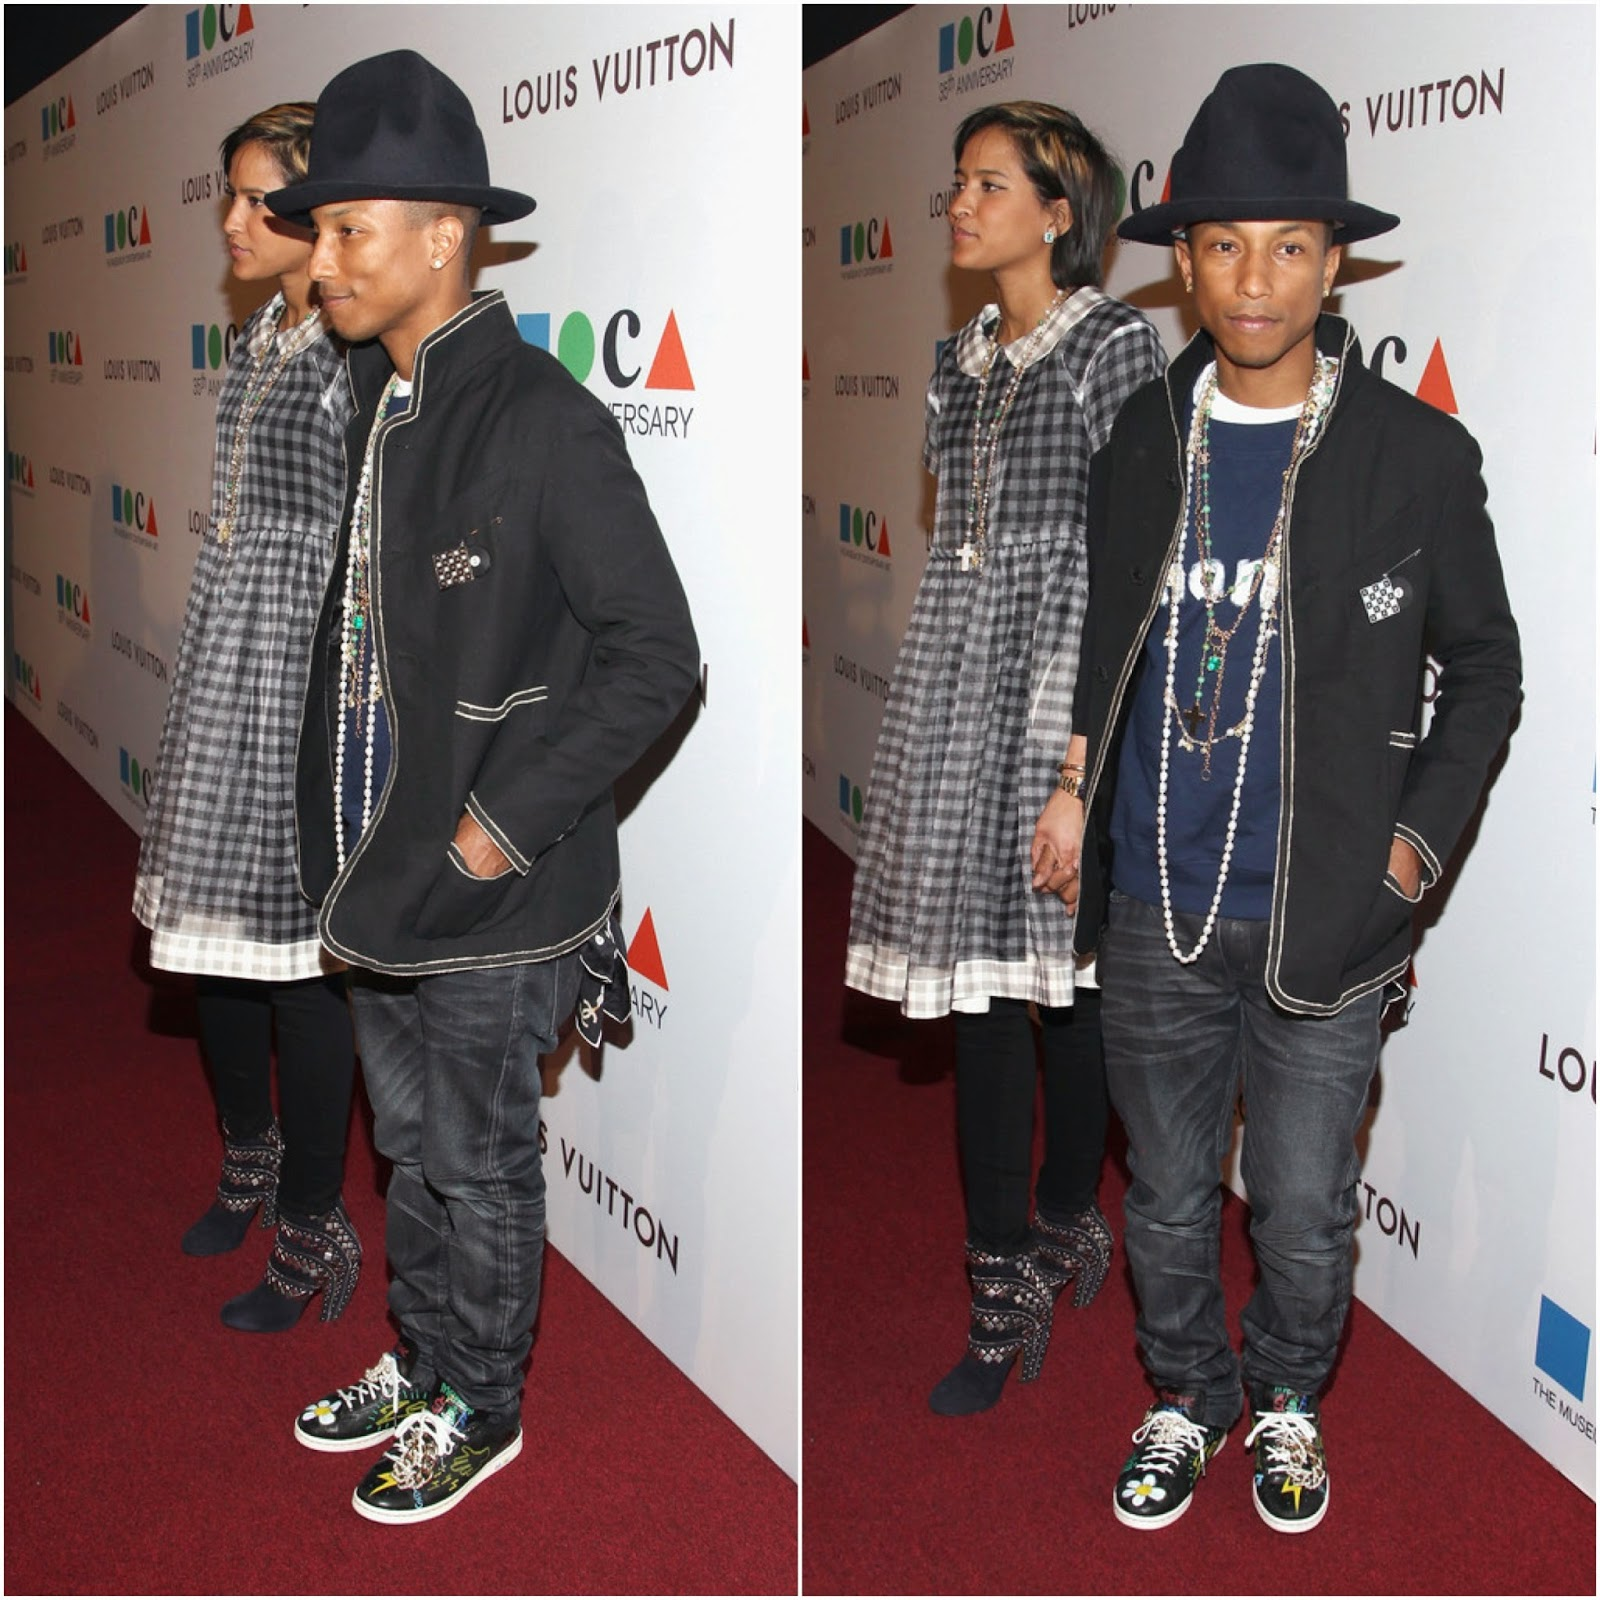 Pharrell Williams in Chanel - The Museum Of Contemporary Art (MOCA) 35th Anniversary Gala